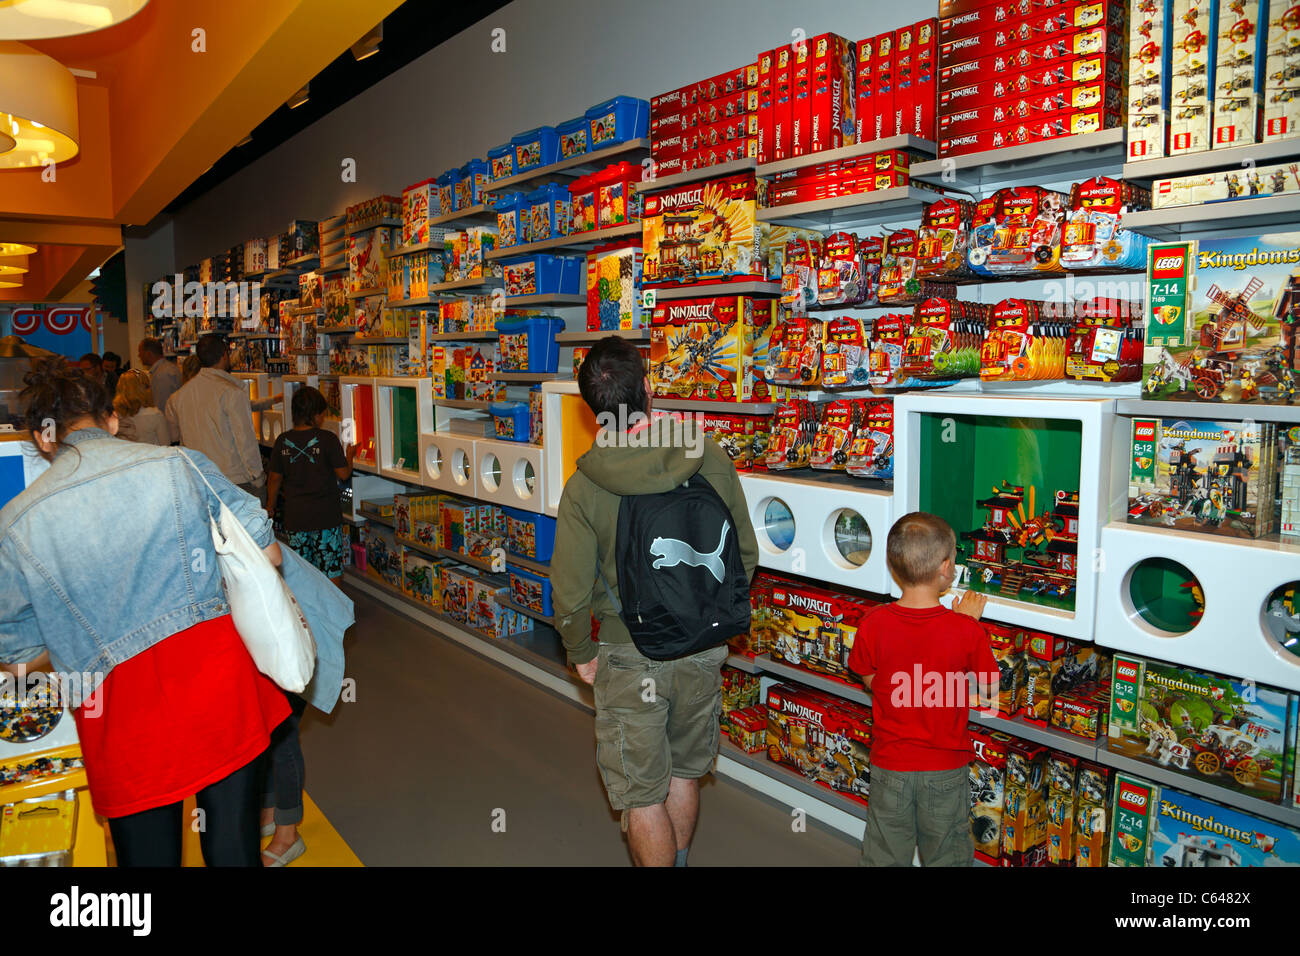 We're much more than just a toy store. We take the LEGO® brand to the next level by being the first to offer LEGO® resale store franchises! In our years of experience, we have developed proven systems that make it easy for you to buy, sell and trade a wide selection of new and used bricks, minifigures and LEGO® accessories.